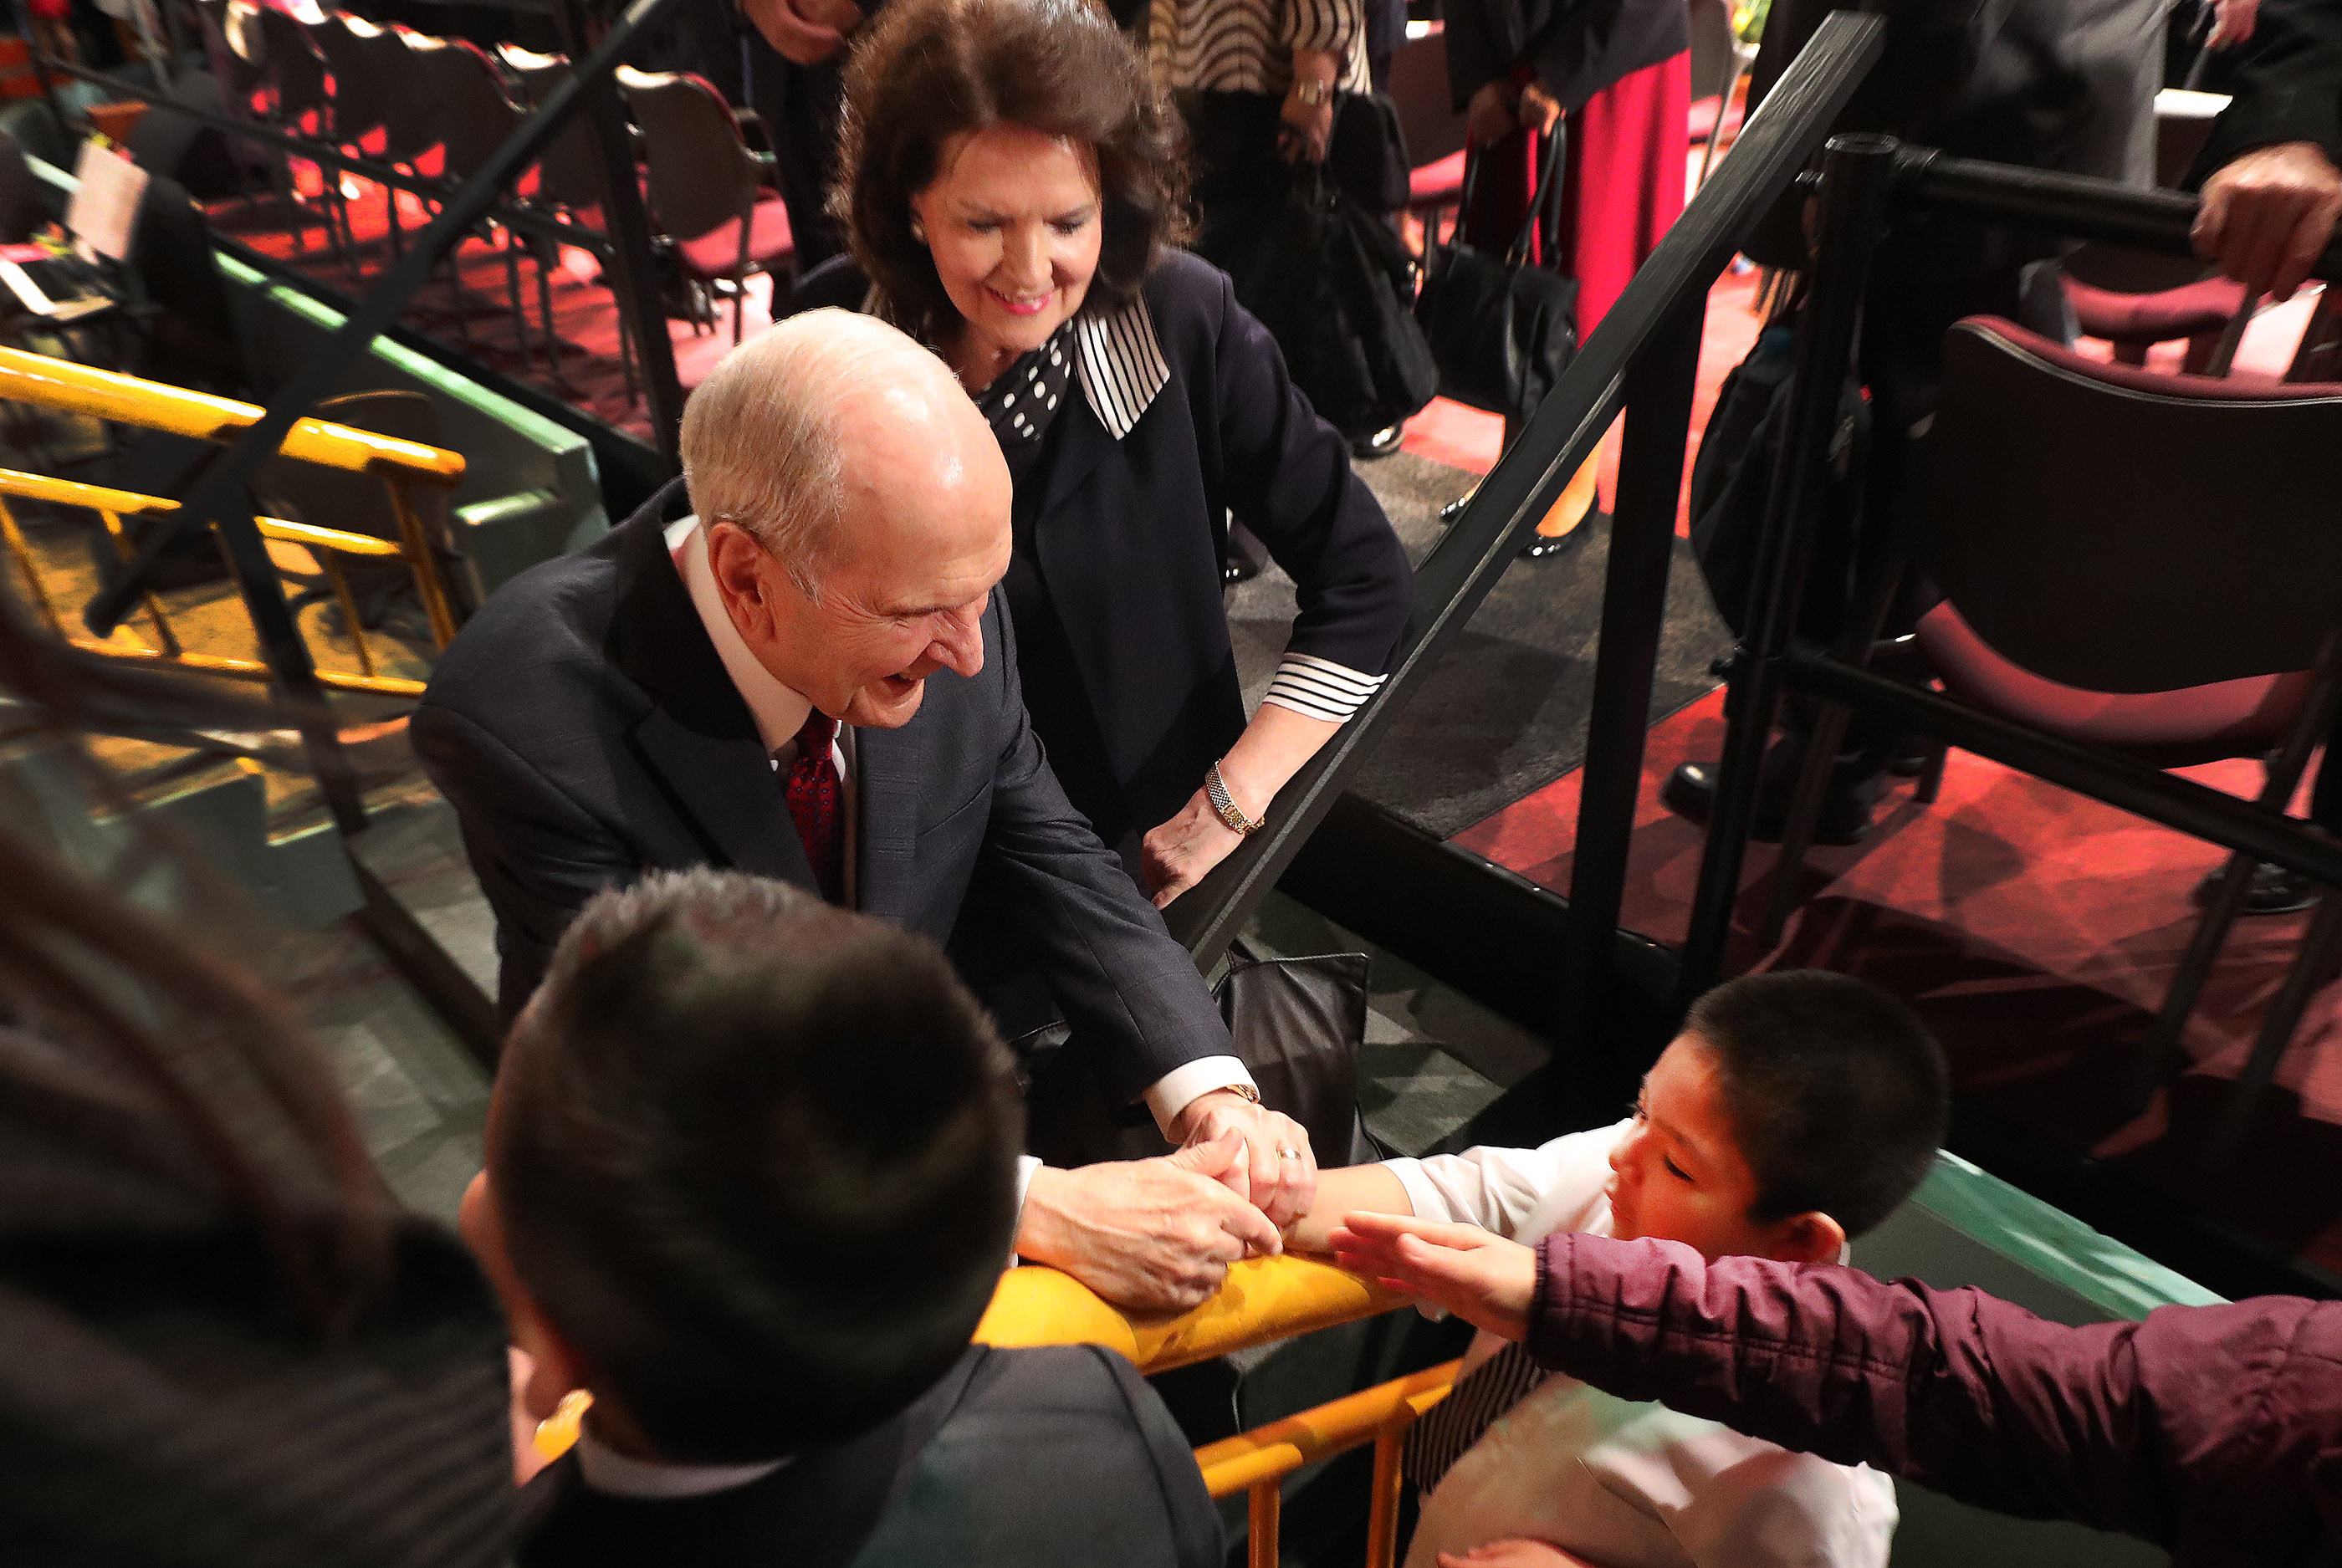 President Russell M. Nelson of The Church of Jesus Christ of Latter-day Saints and his wife, Sister Wendy Nelson, greet a youngster after a devotional in Lima, Peru, on Oct. 20, 2018.